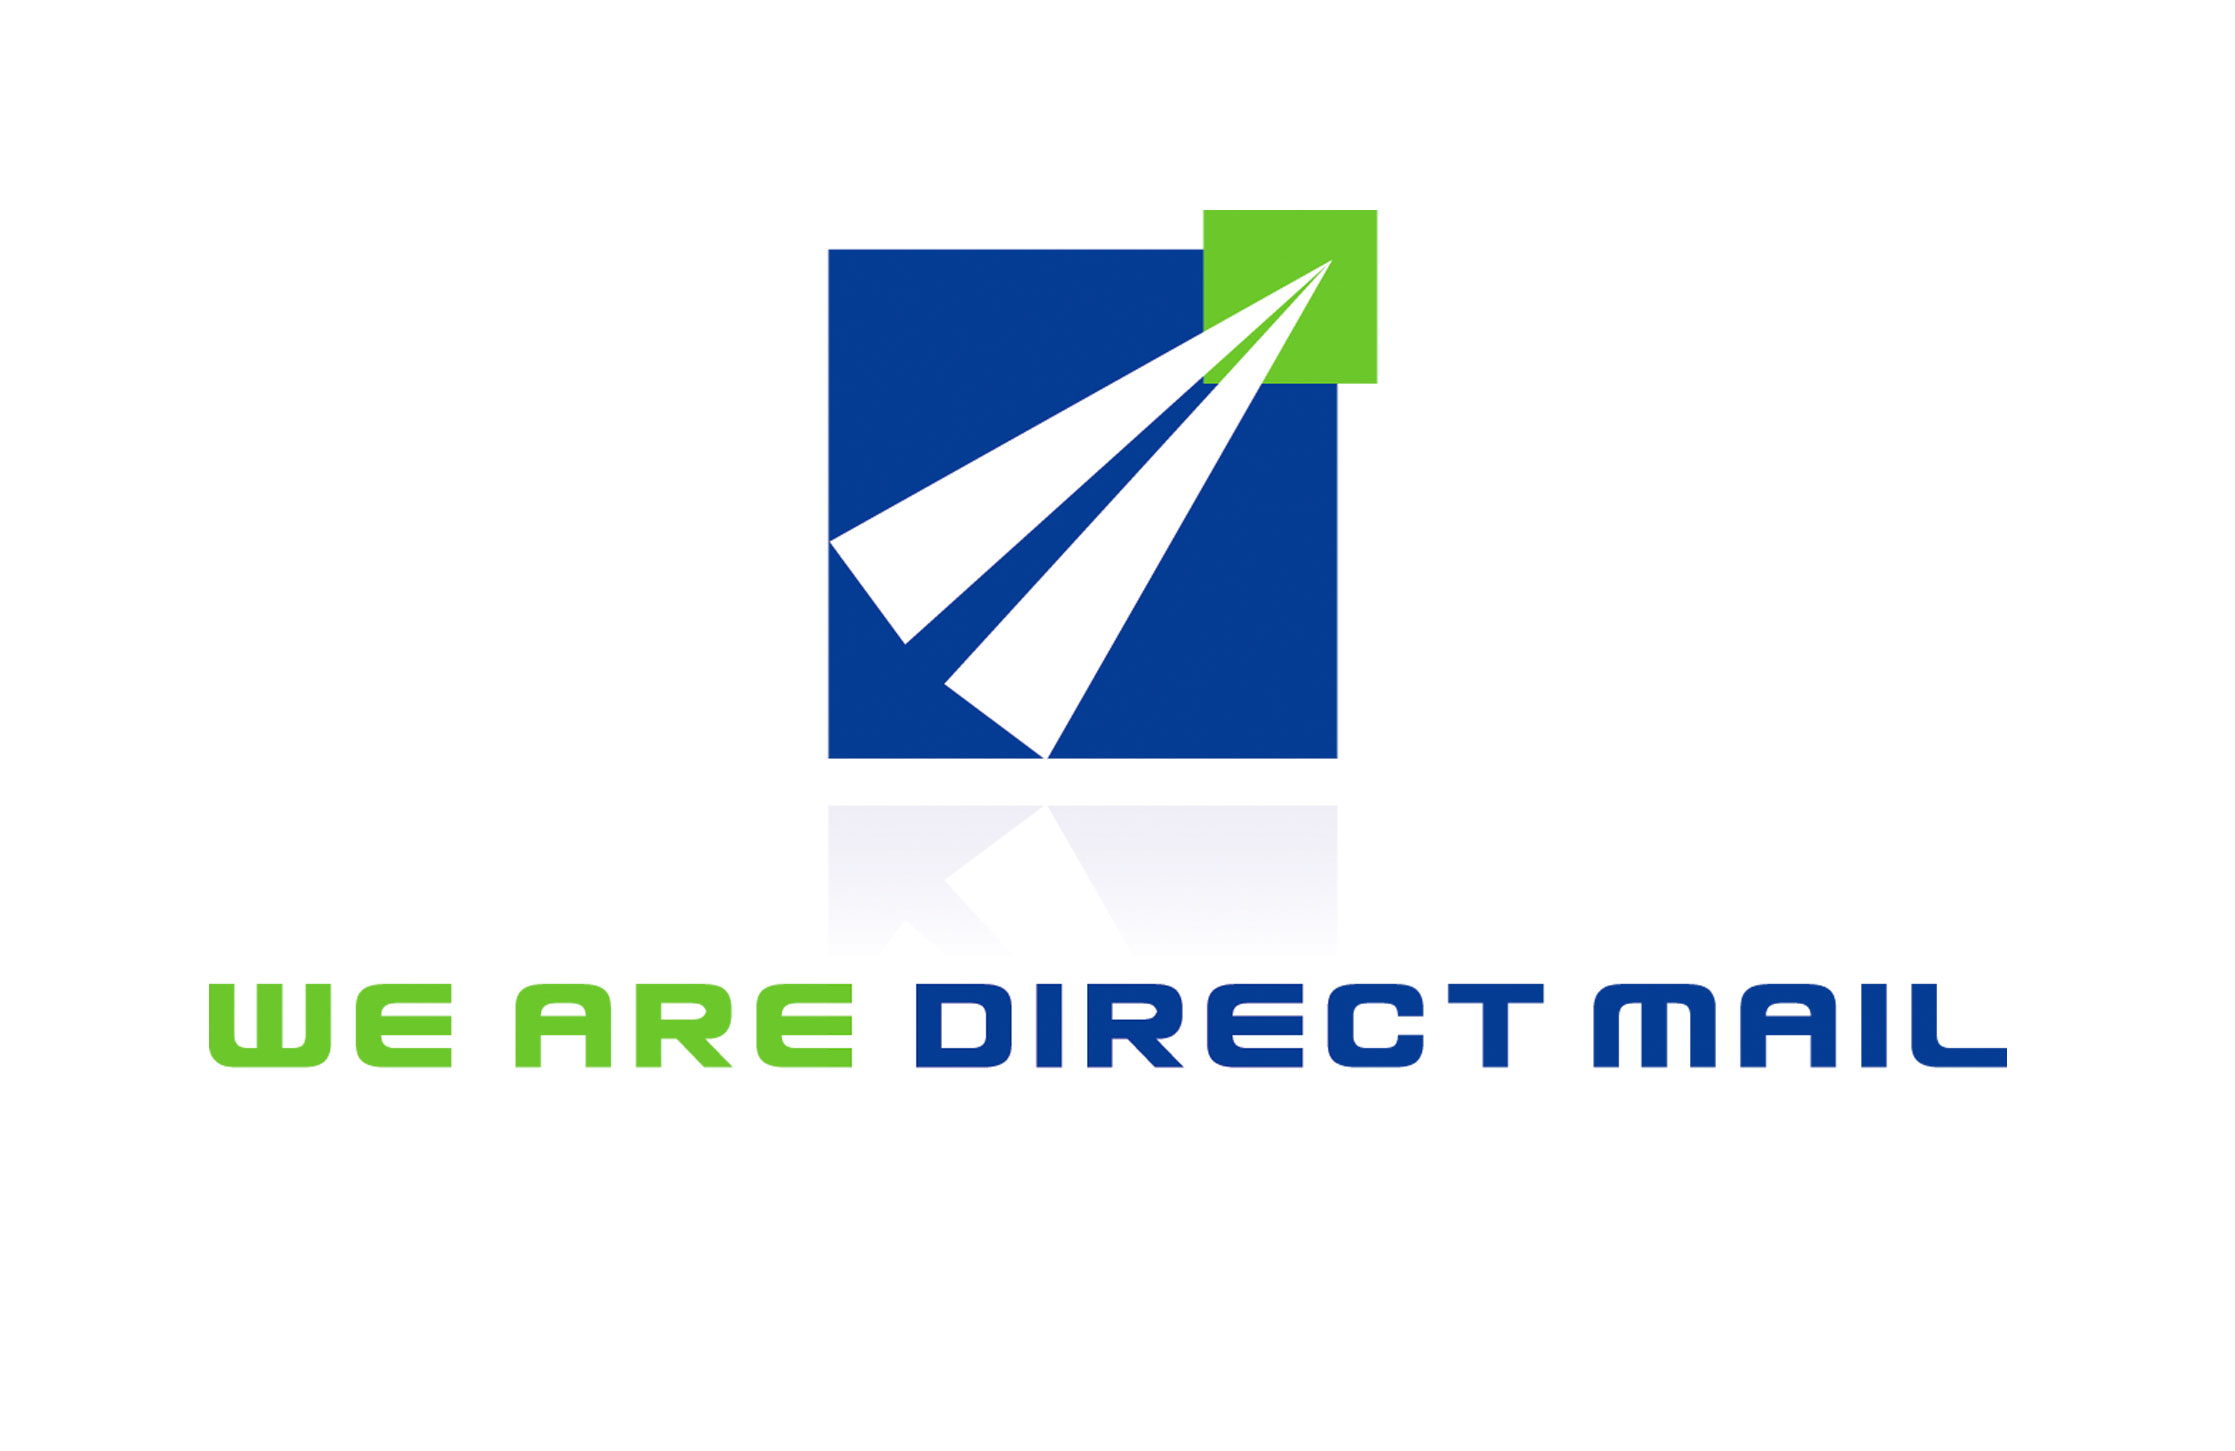 Design and artwork of proposed Direct Mail corporate logo